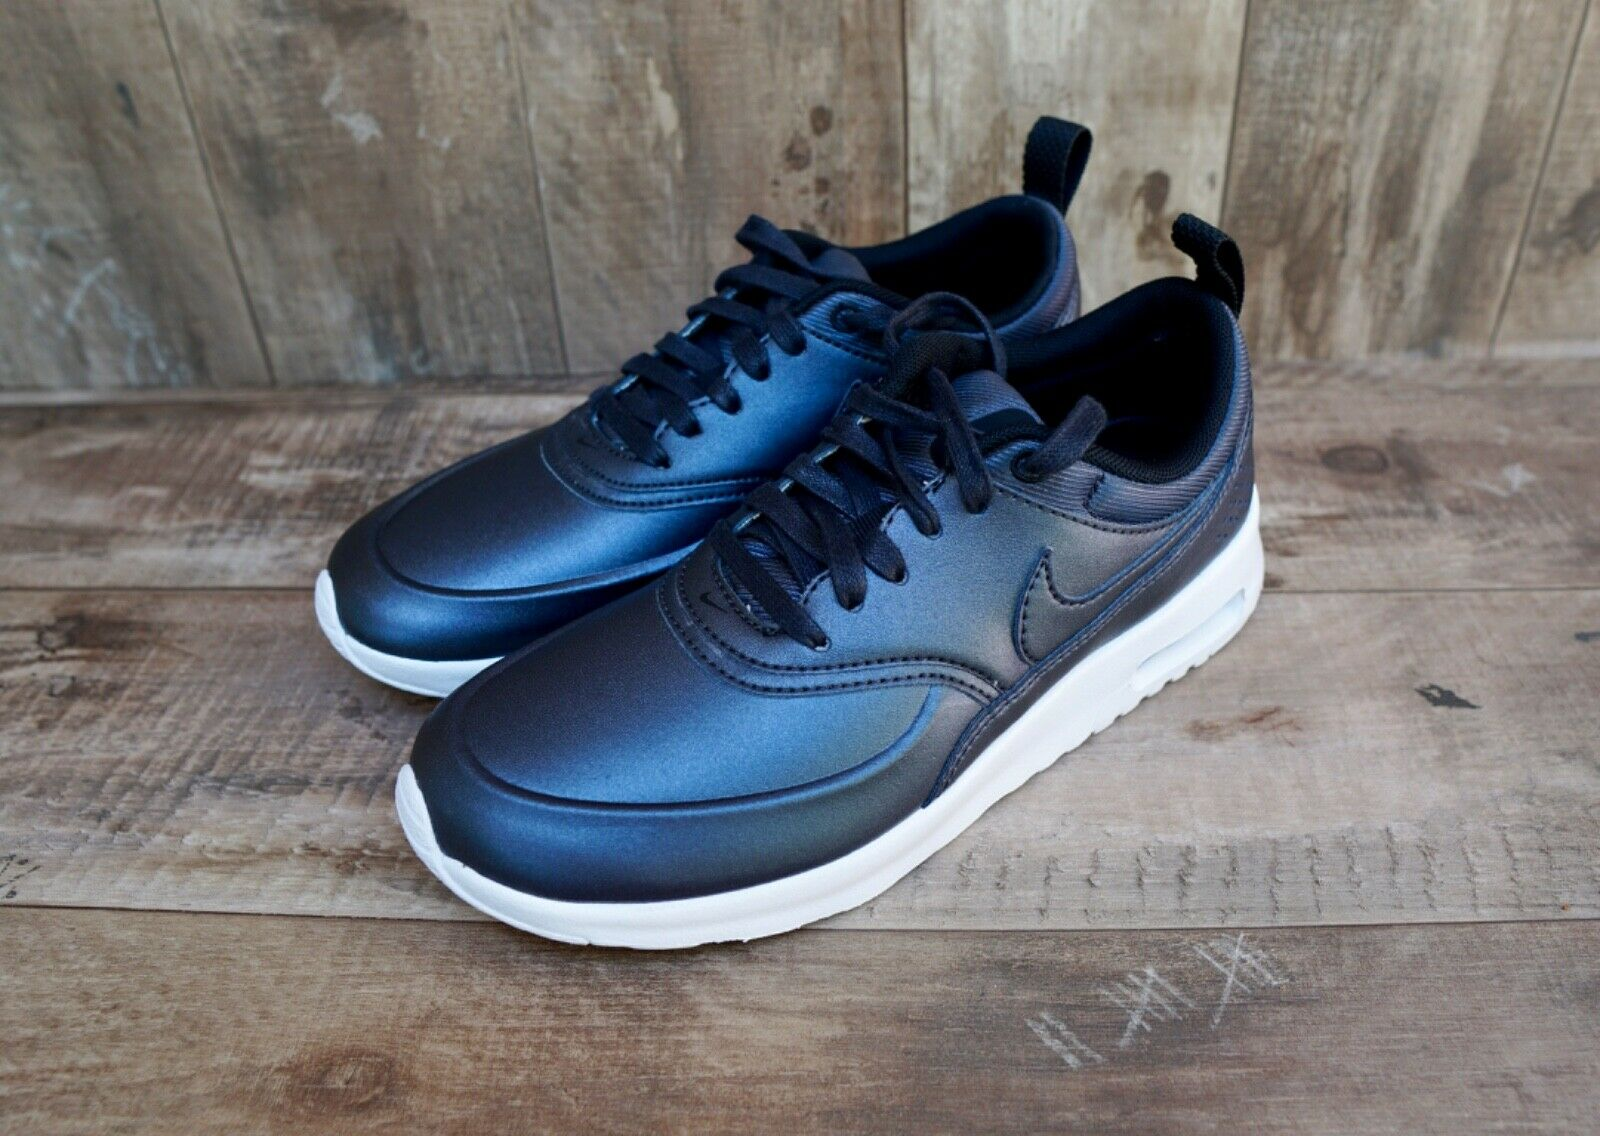 Nike Air Max Thea SE Special Edition Metallic Hematite Women's shoes 861674 NEW